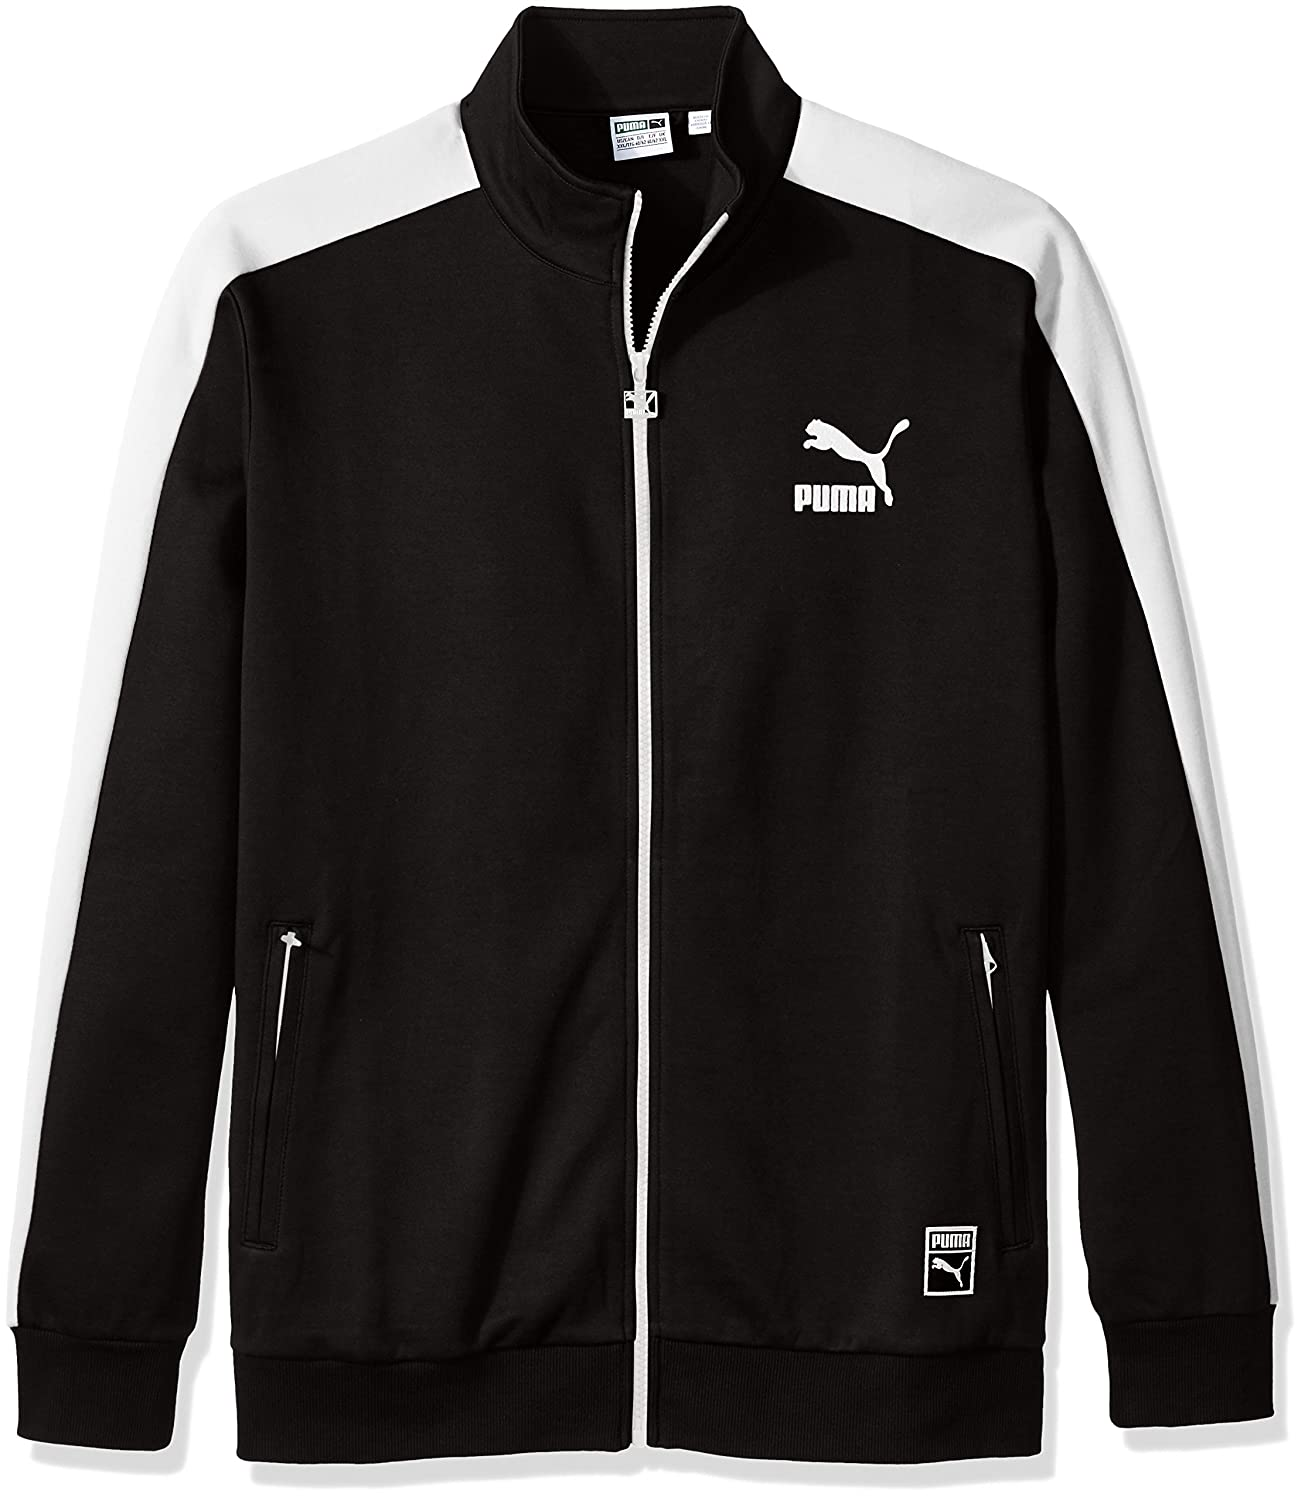 Radiolome tg 30 Puma Archive T7 Track off Men's Jacket qSUVpzMG